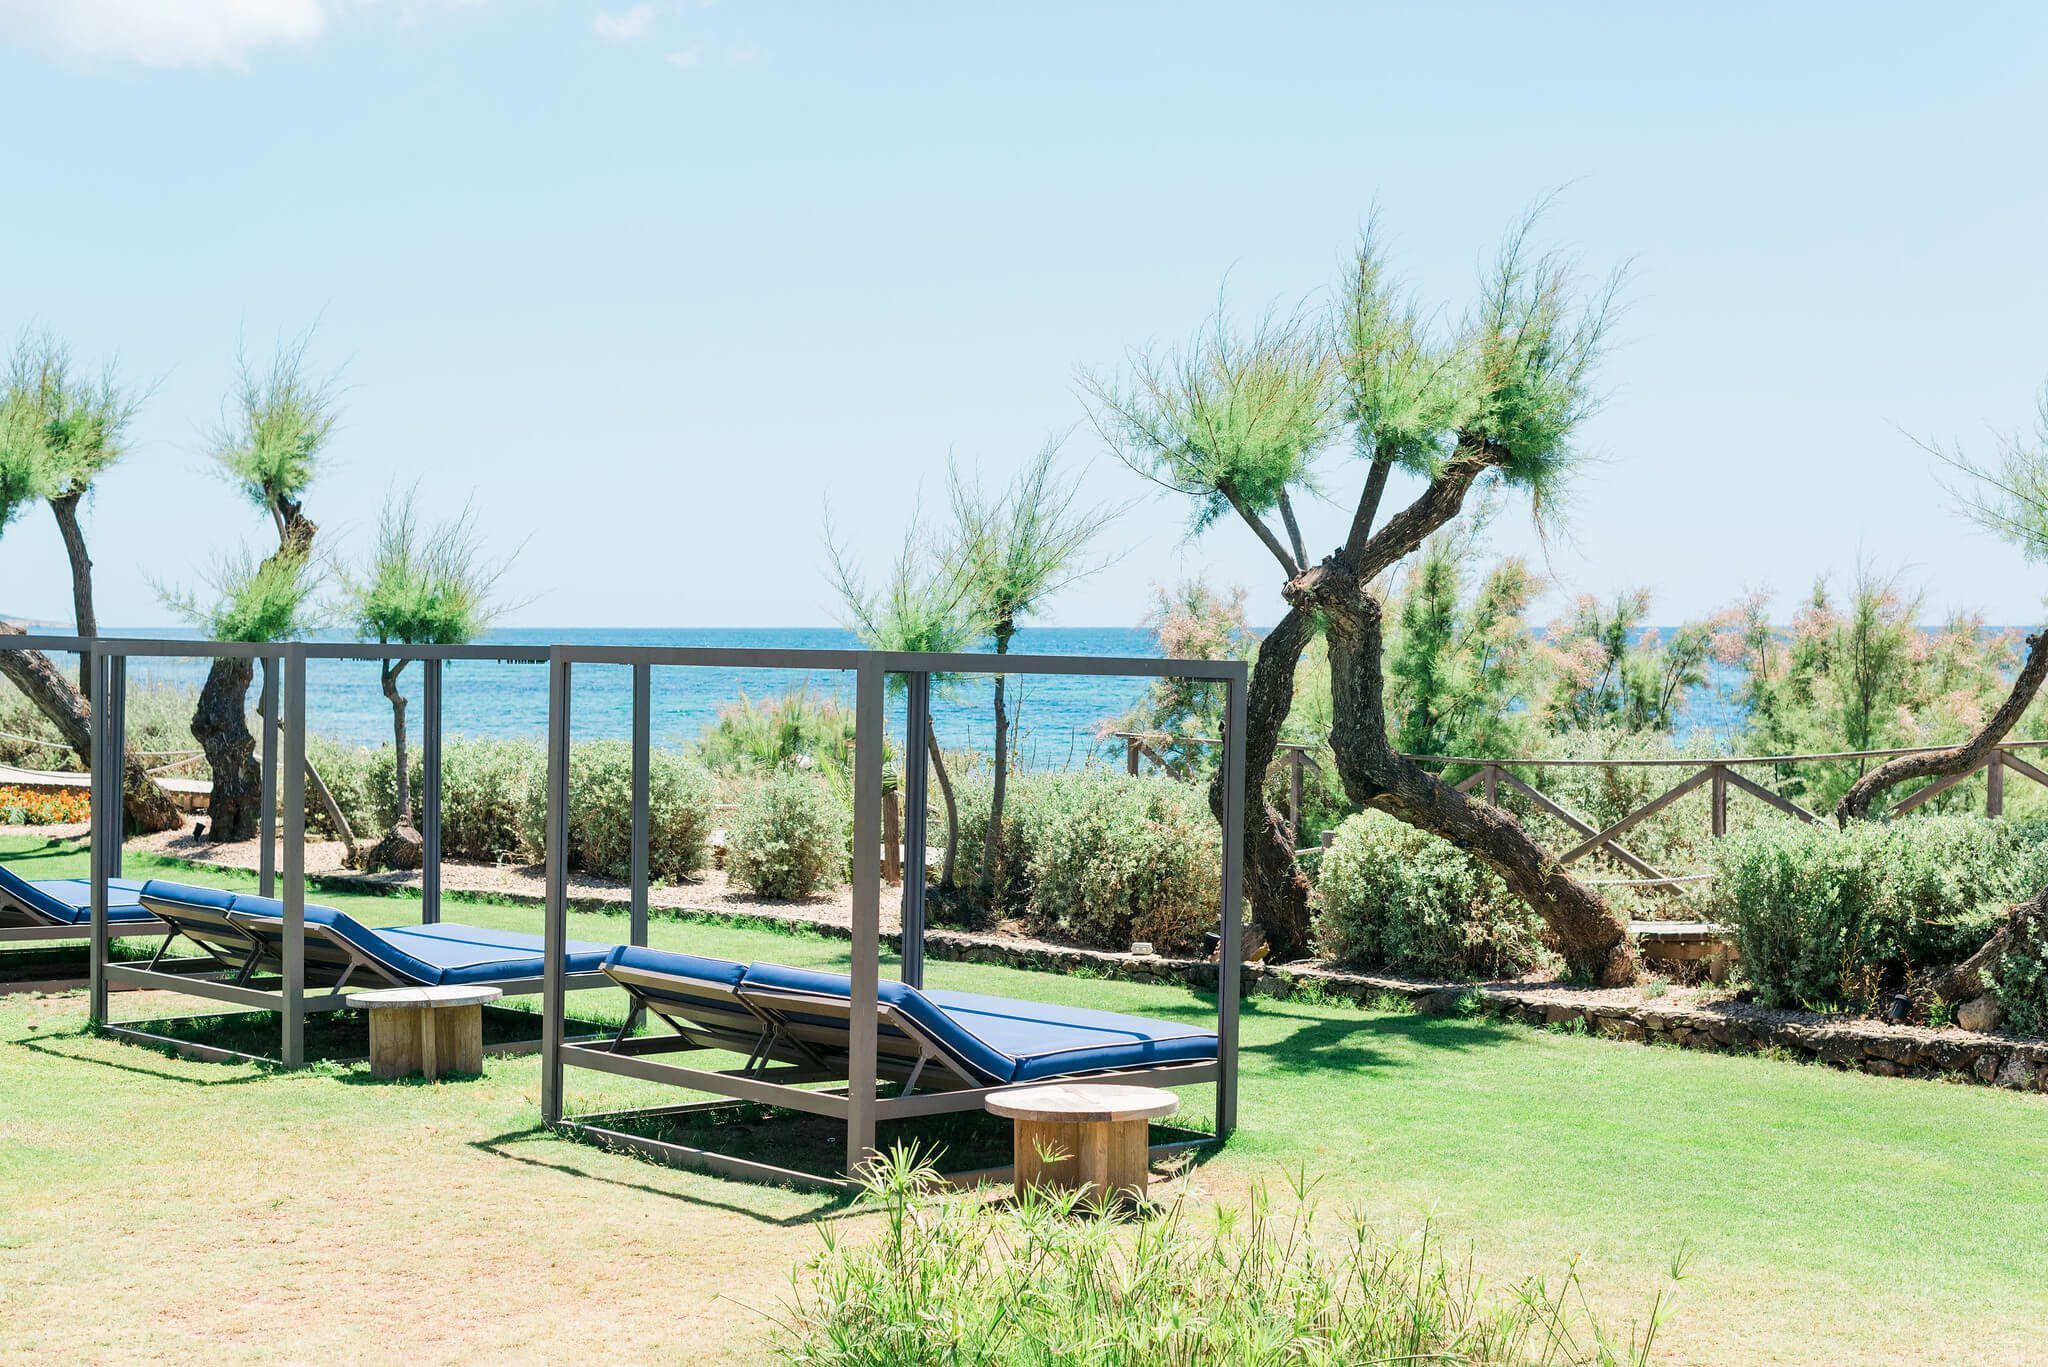 https://www.white-ibiza.com/wp-content/uploads/2020/03/formentera-hotels-gecko-beach-club-2020-03.jpg